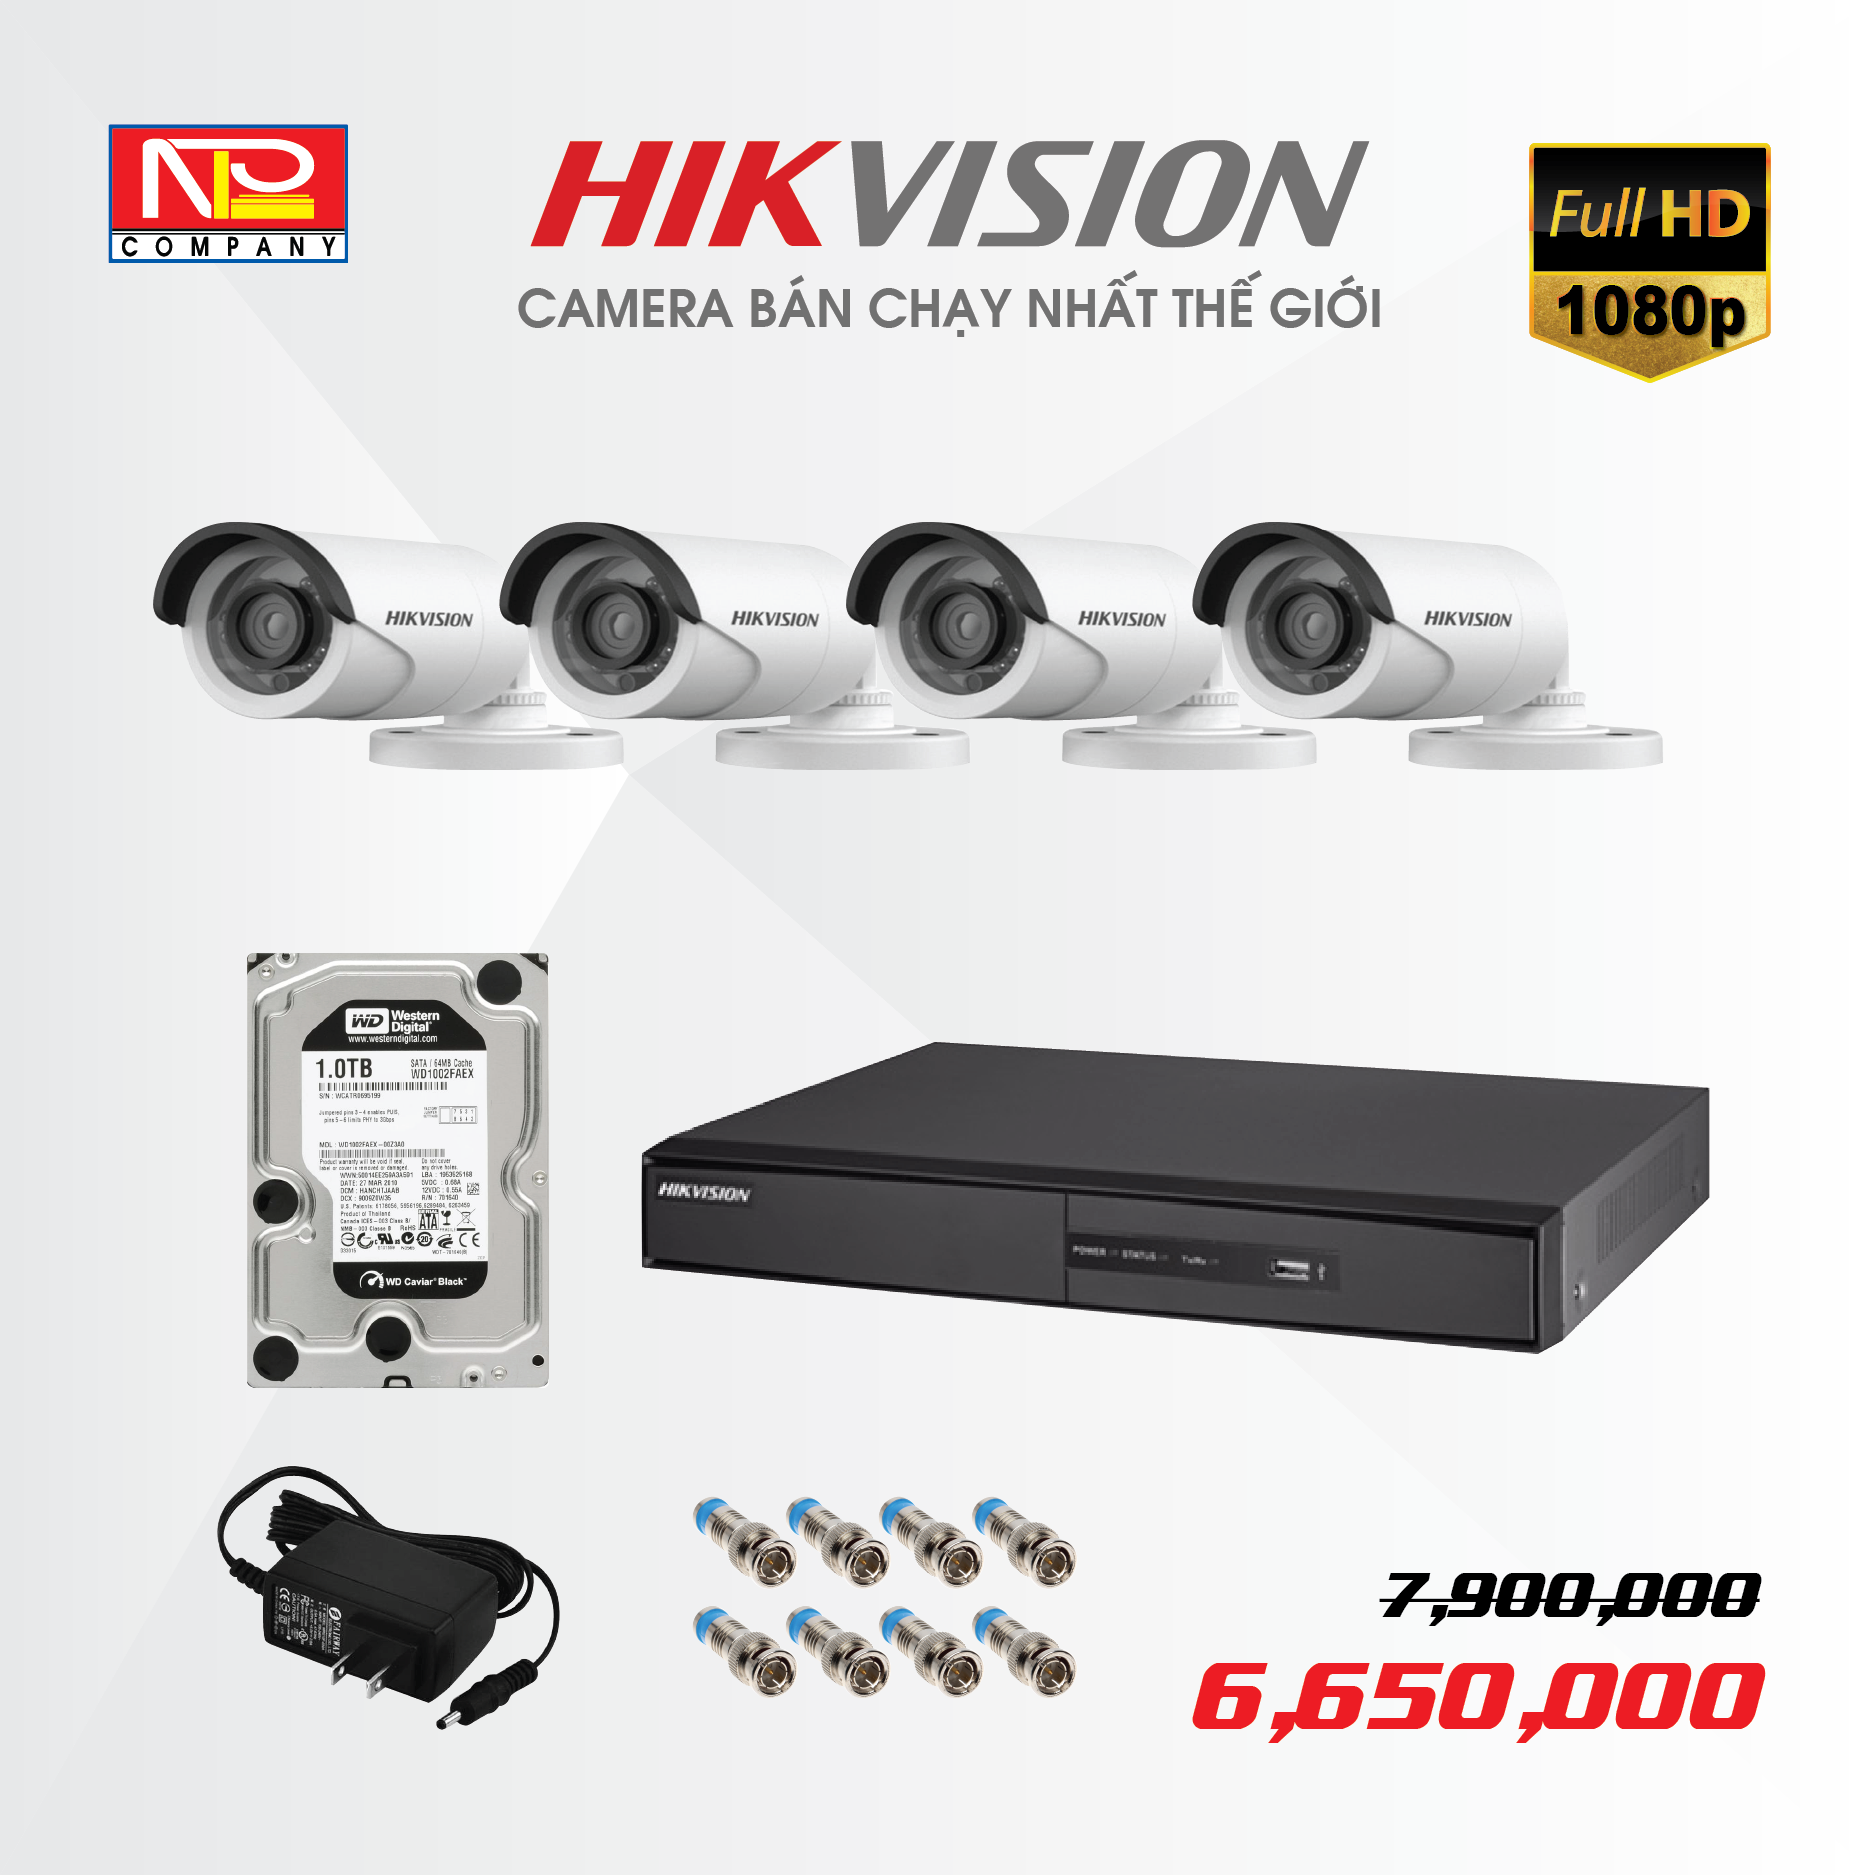 Bộ kit 4 camera analog Hikvision Full HD1080P